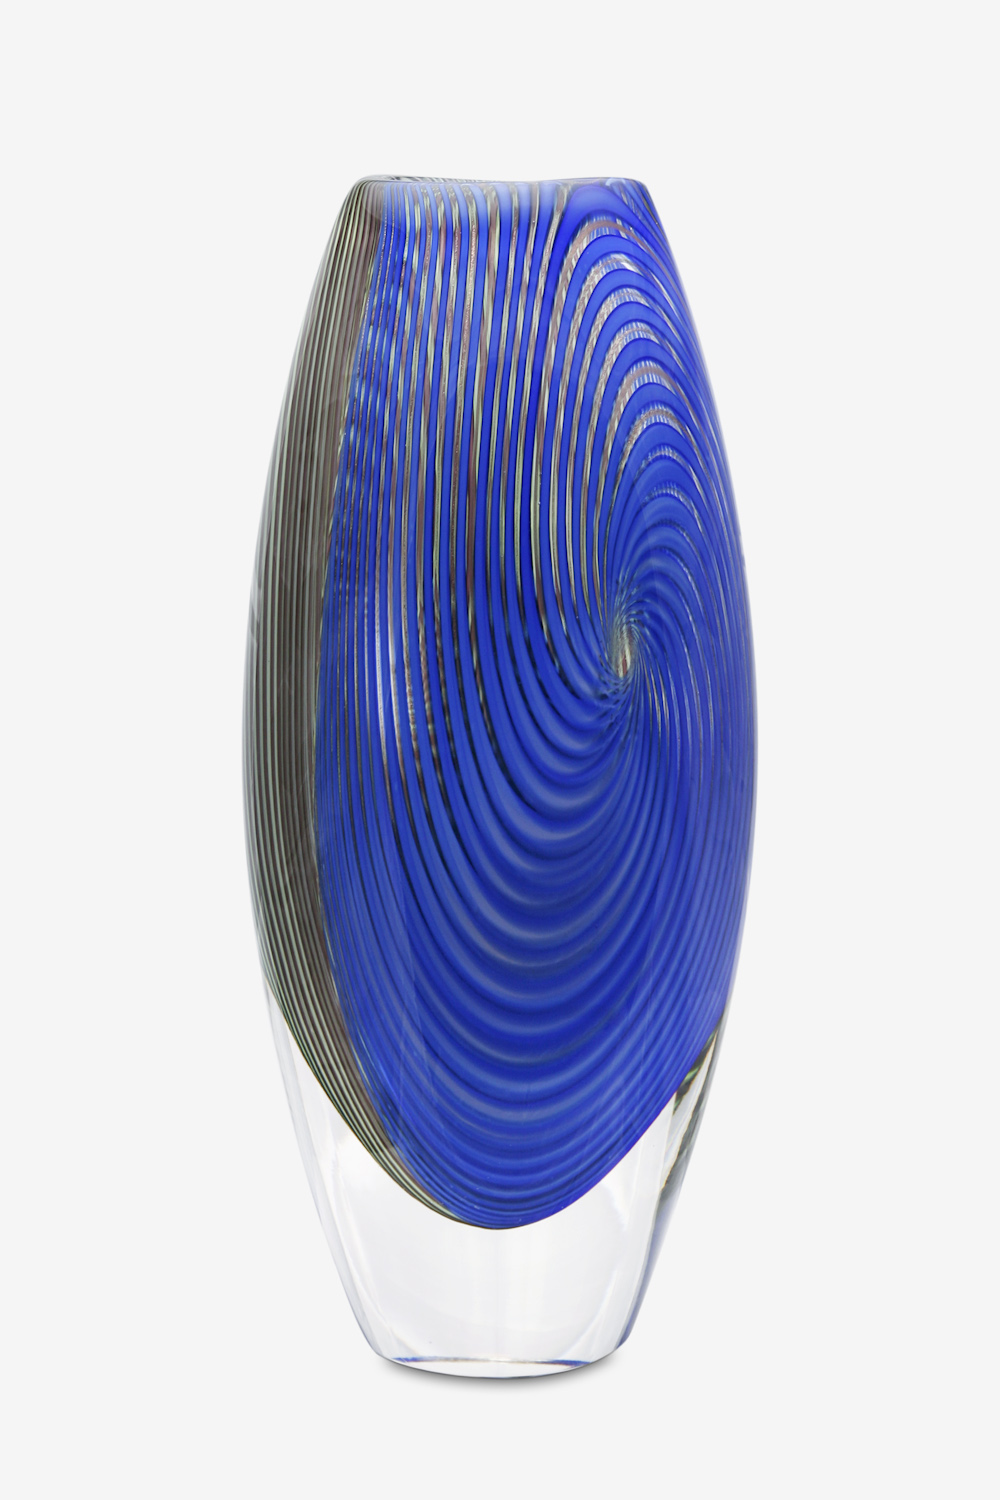 Masello oval vase